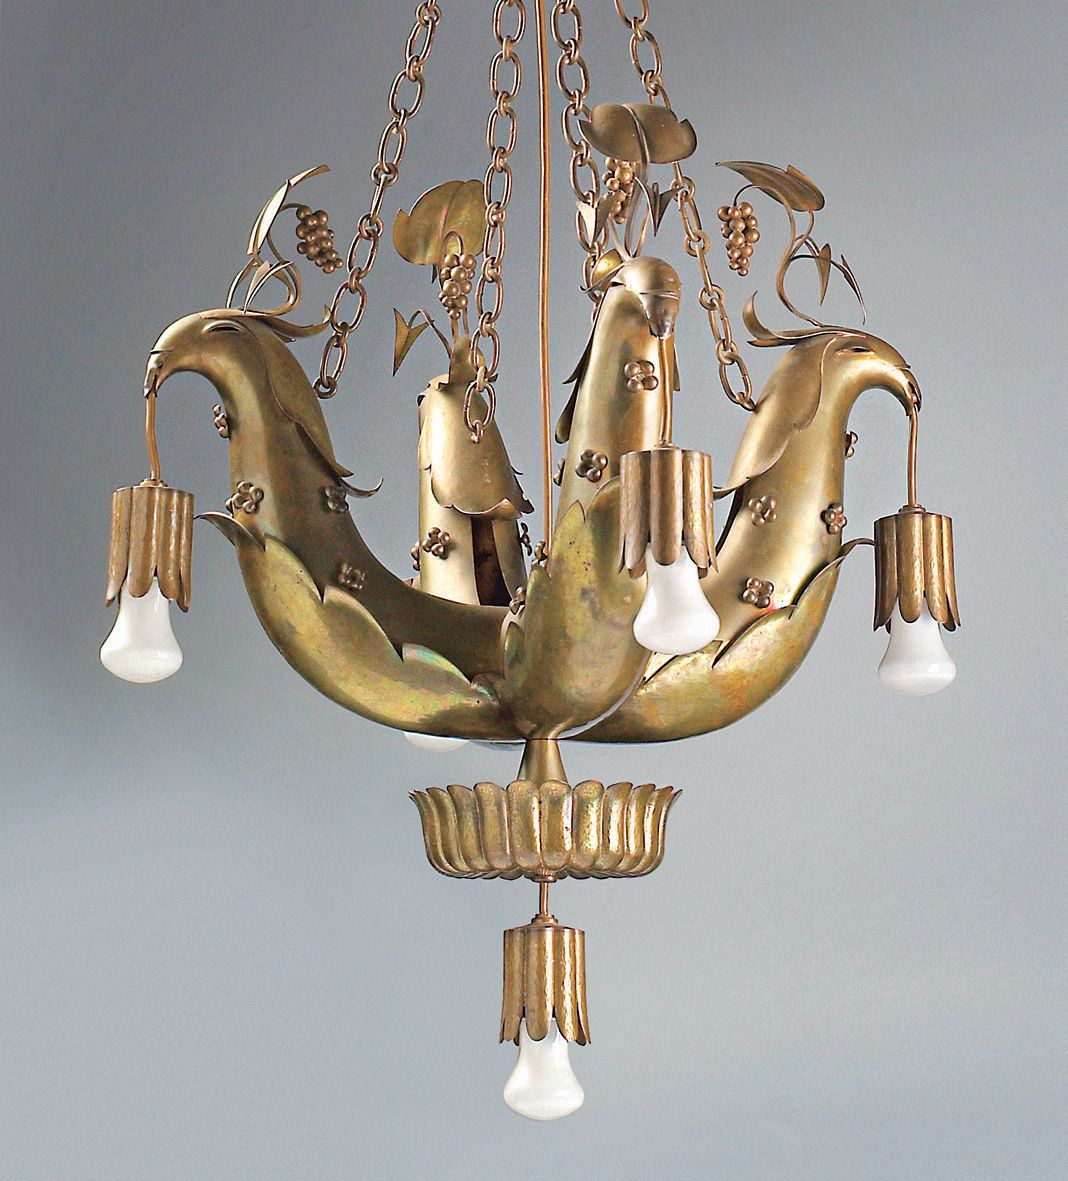 Silly supper dagobert peche pinterest chandeliers dagobert peche chandelier with birds designed 1922 arubaitofo Gallery